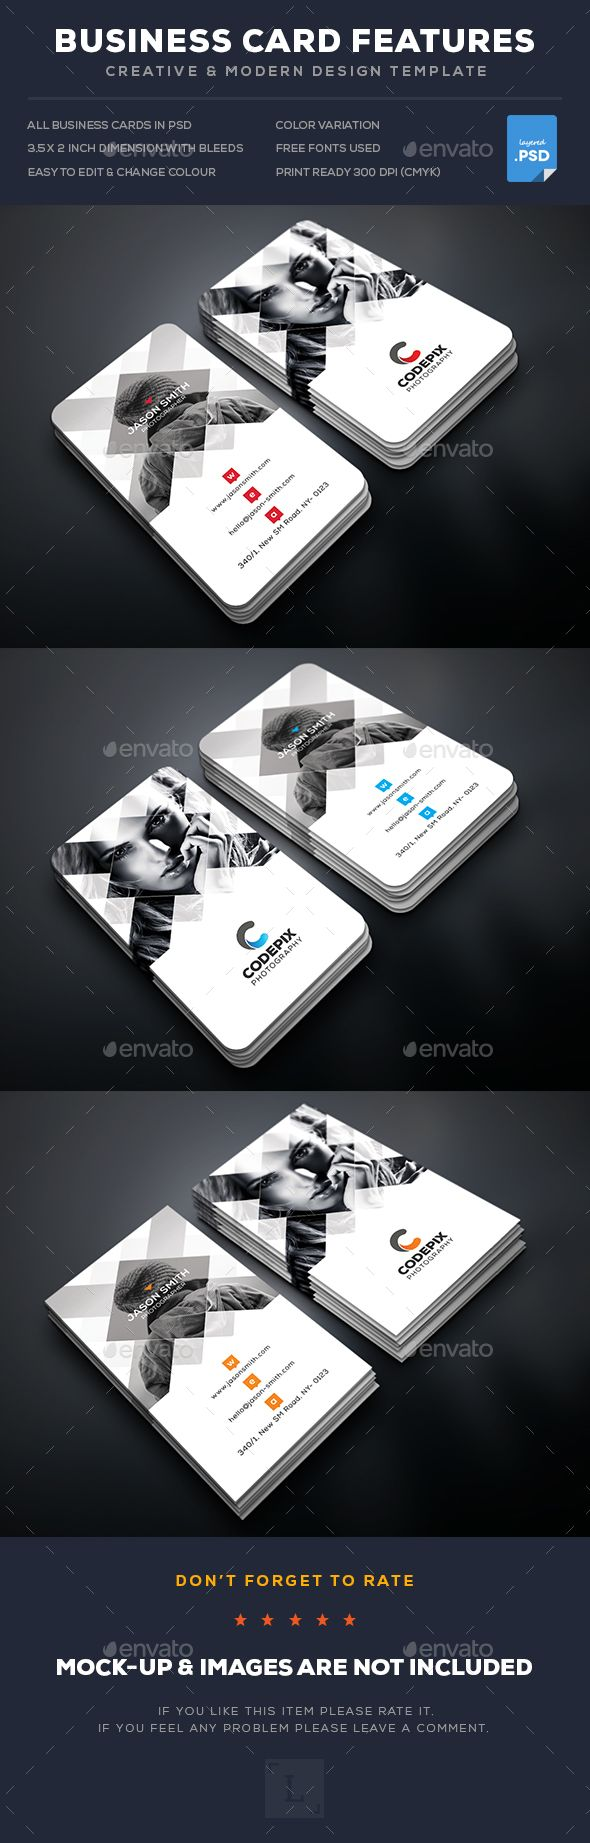 37 best business cards images on pinterest business card design creative photography business card cheaphphosting